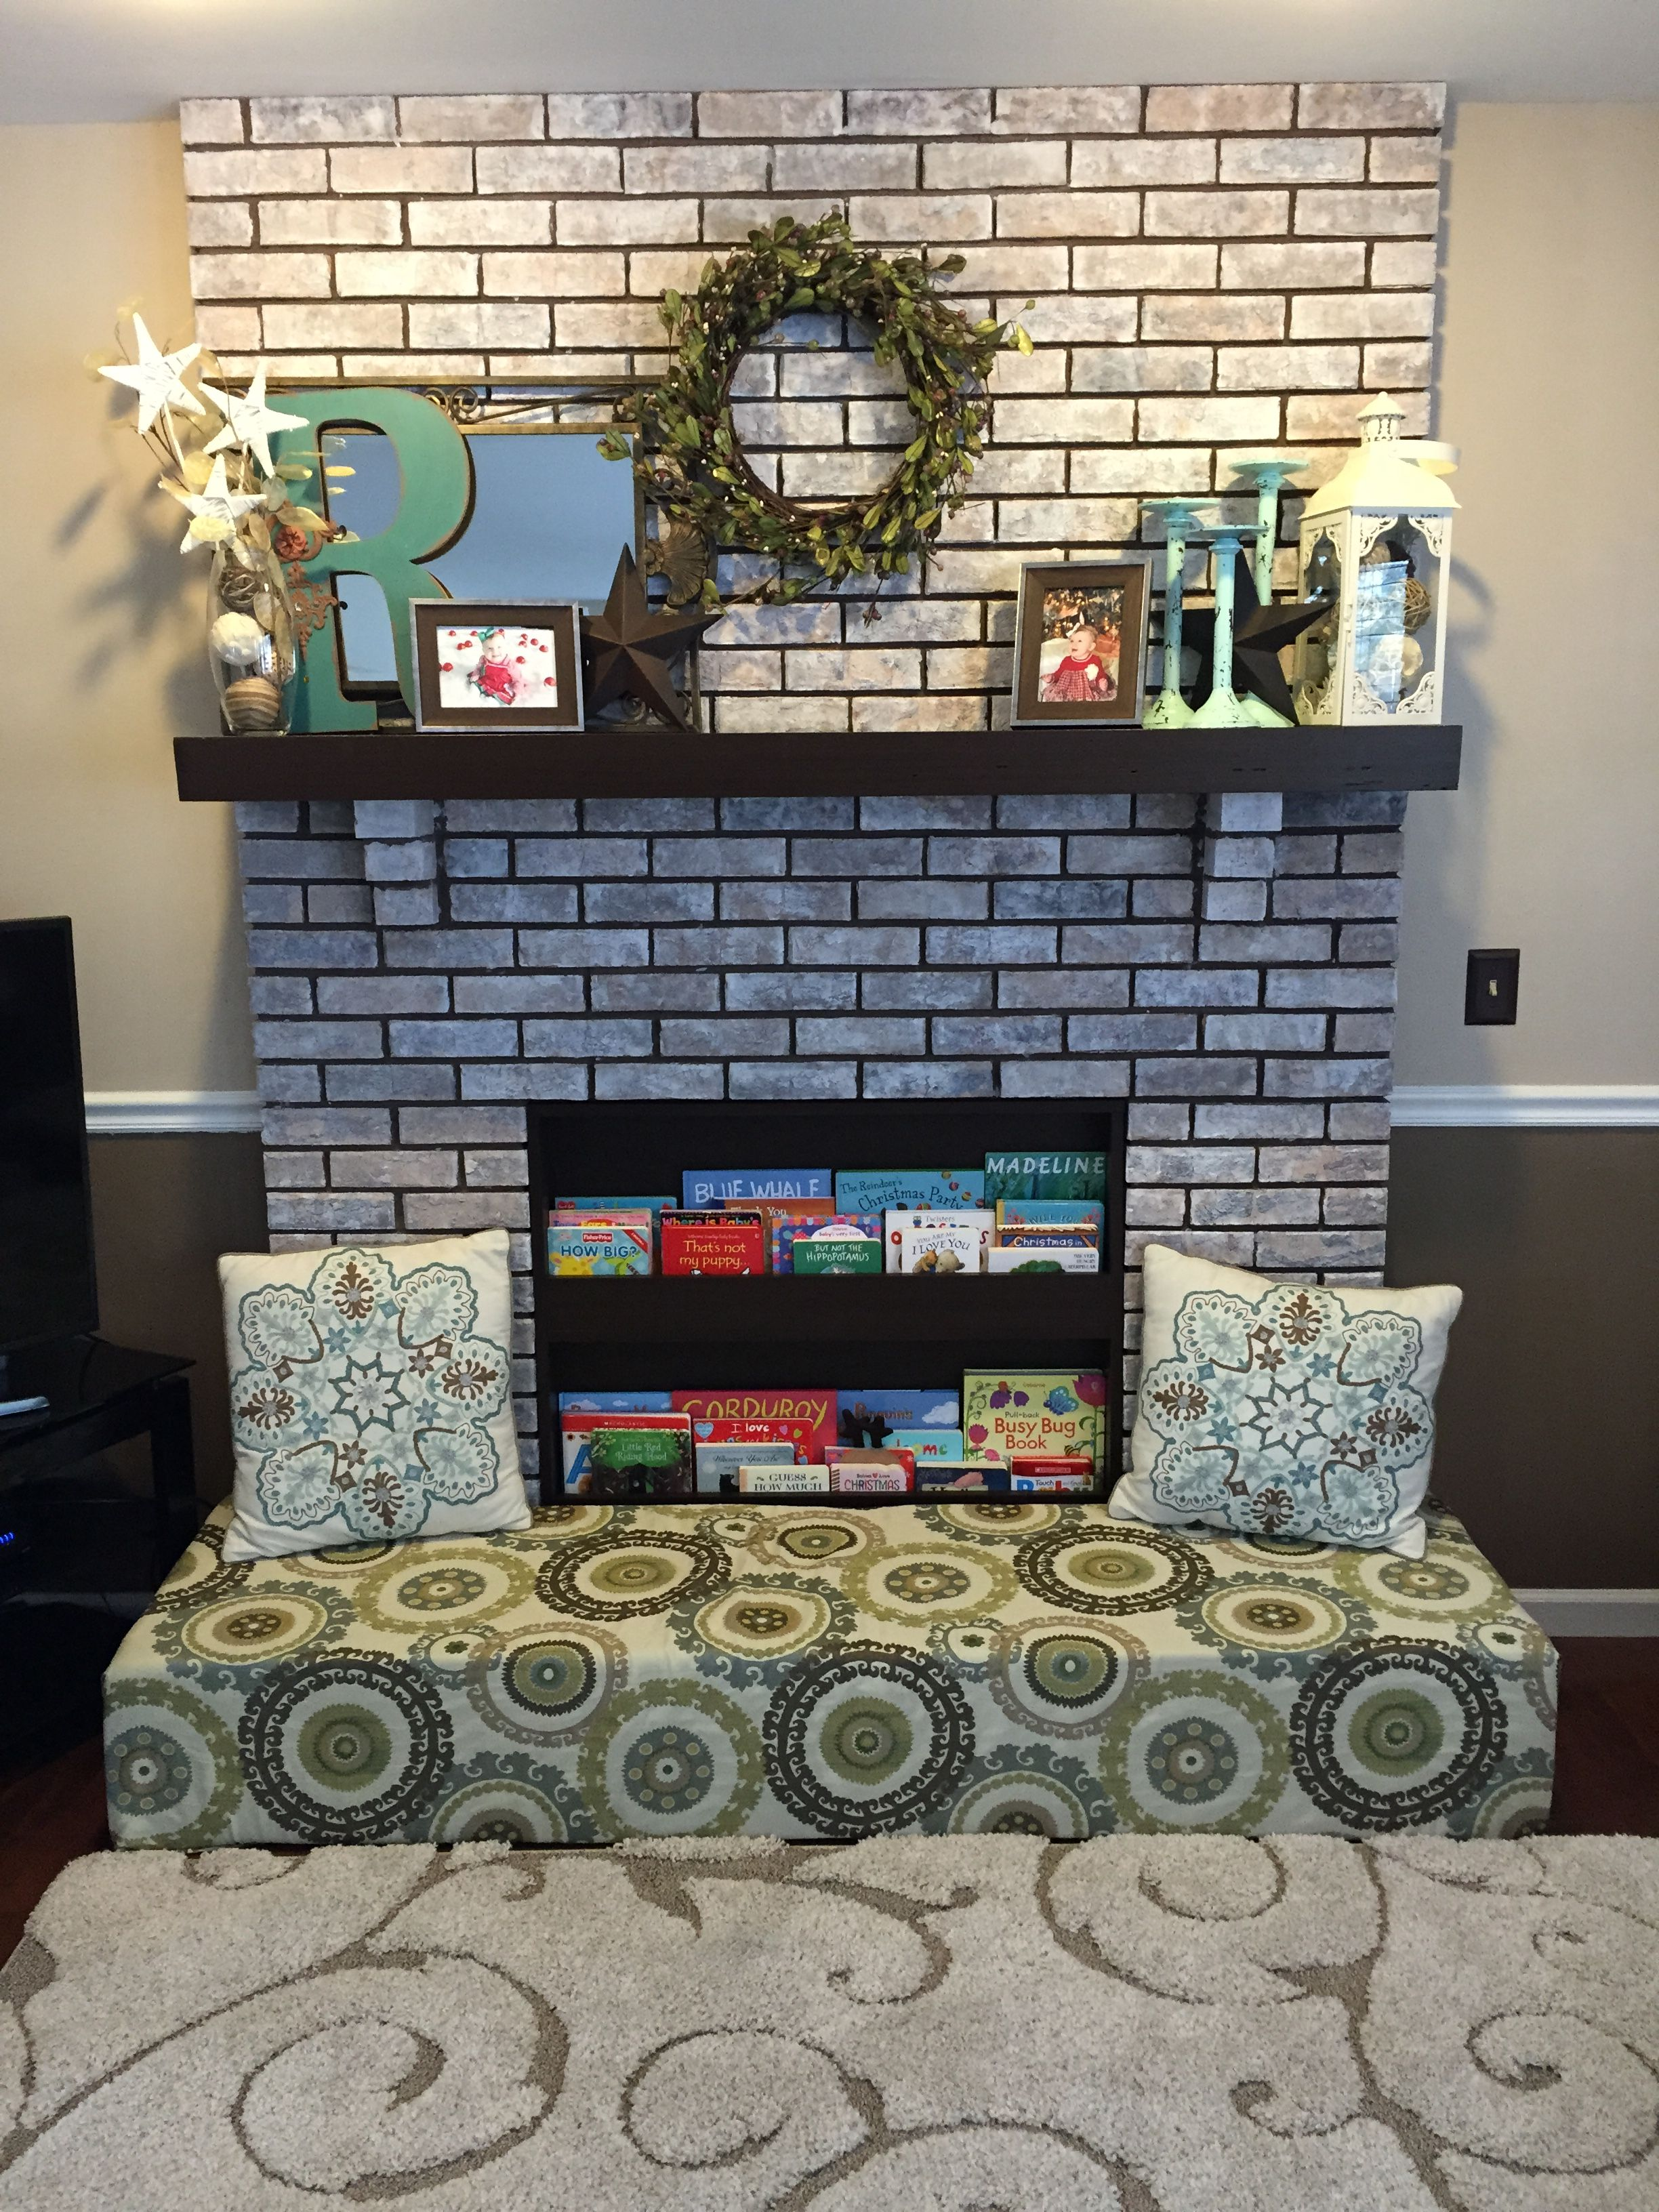 Baby Proofed Fireplace Created With Foam Bench Over The Hearth And